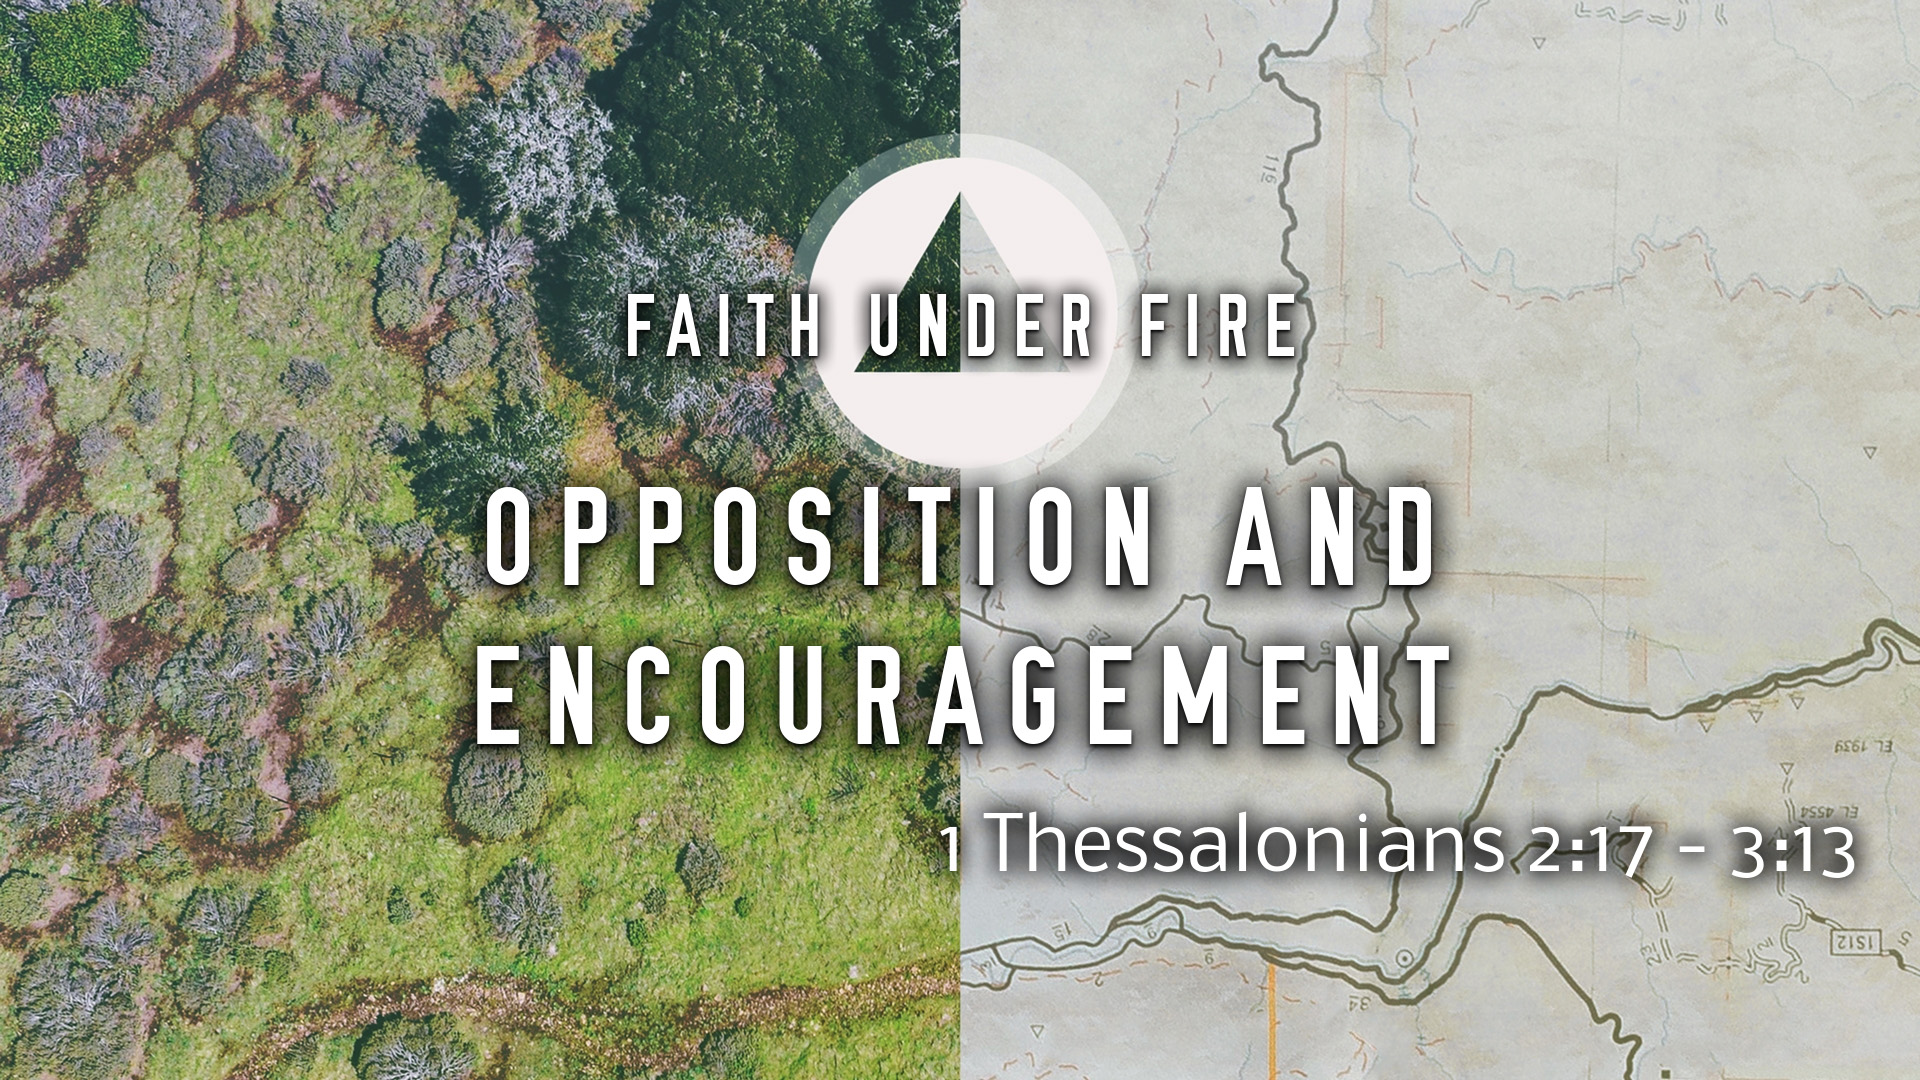 Image for the sermon Opposition and Encouragement